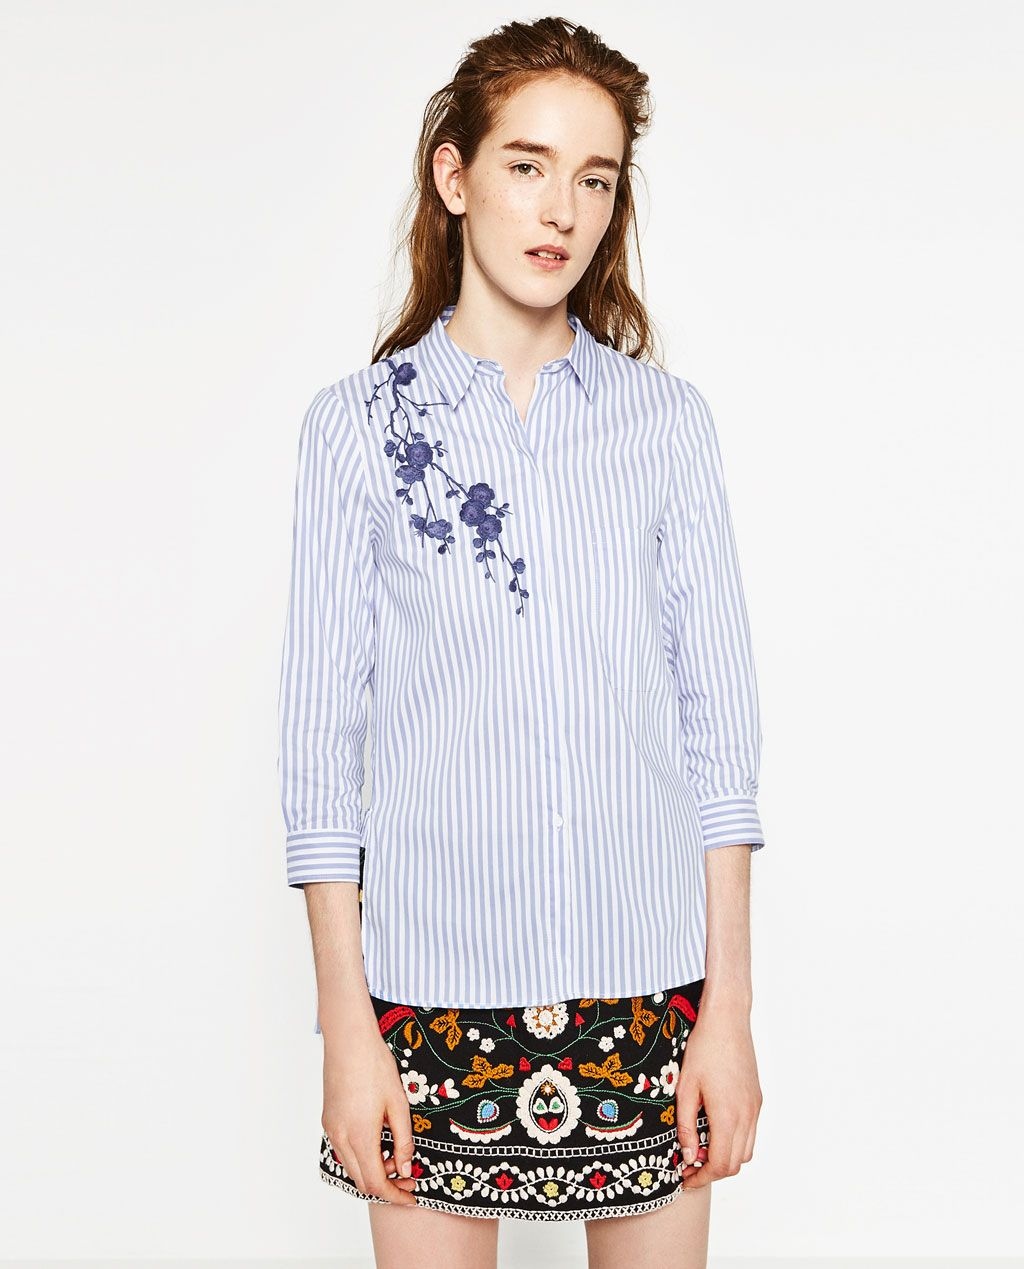 ce8441f32dae EMBROIDERED SHIRT-View all-TOPS-WOMAN | ZARA United States ZARA Camisas  Bordadas